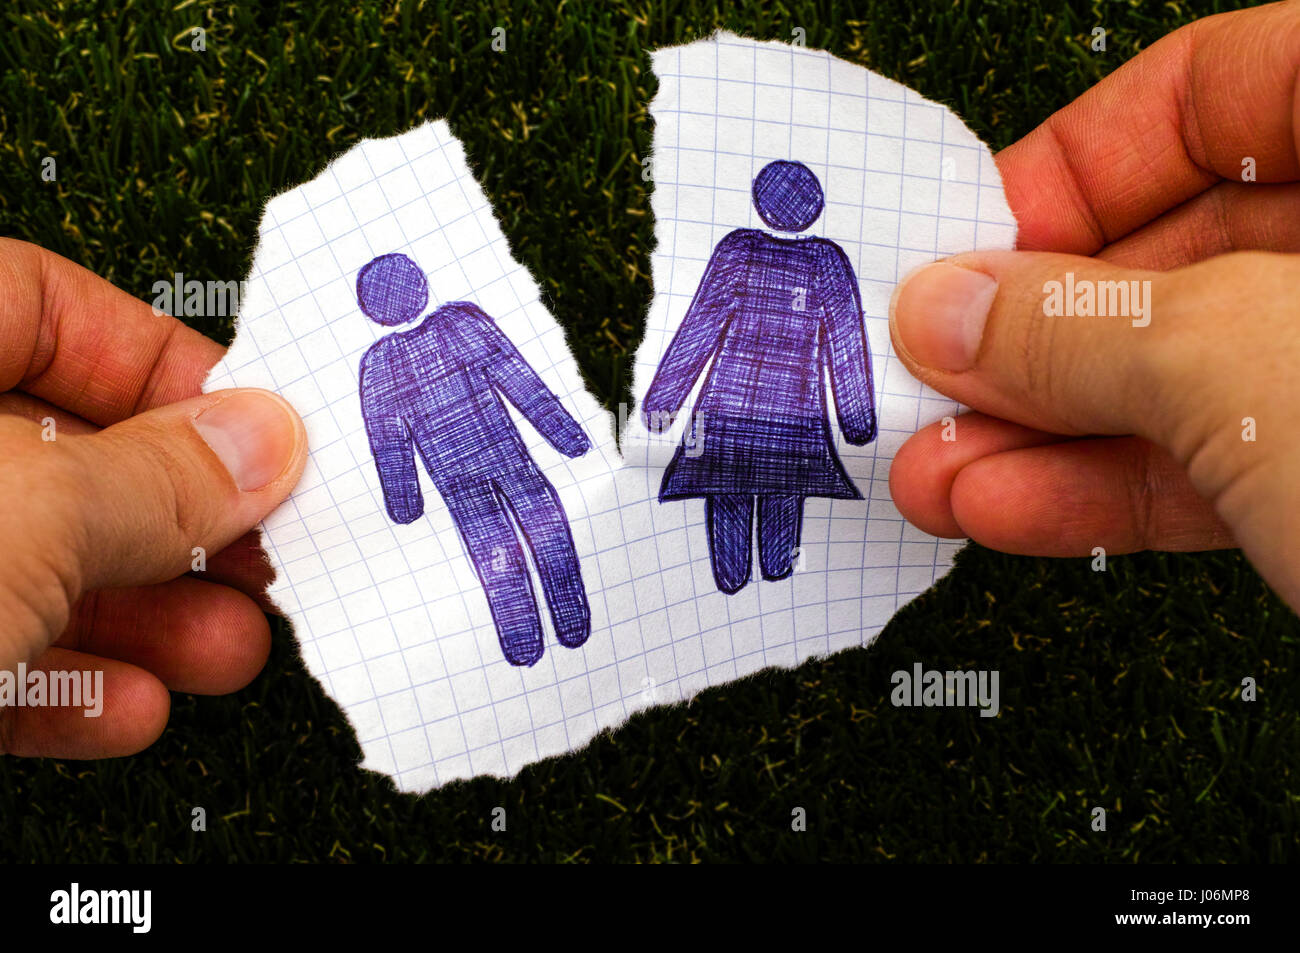 Person hands ripping piece of paper with hand drawn man and woman figures. Grass background. Doodle style. - Stock Image